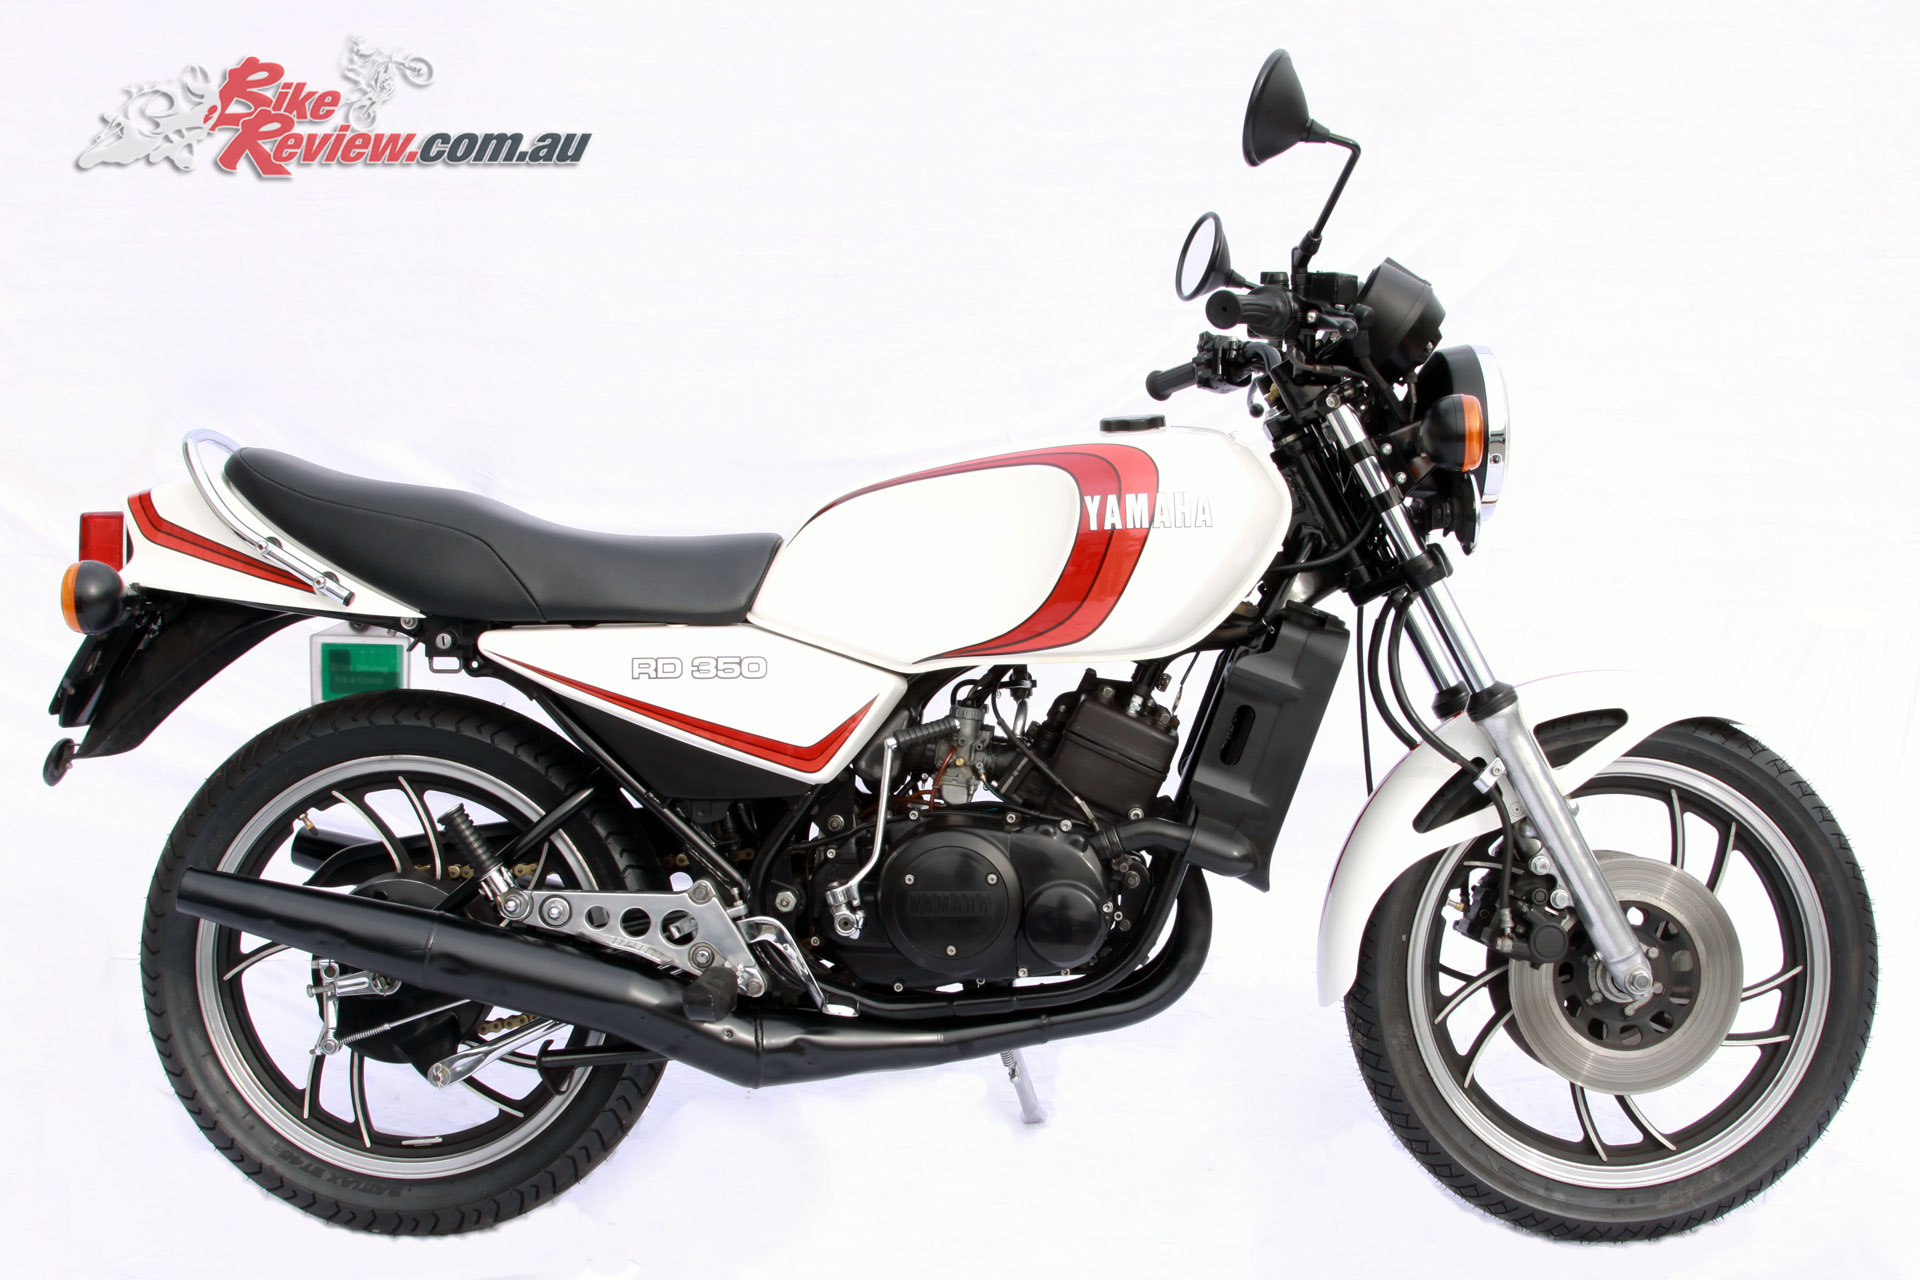 Classic two-stroke: Yamaha's RD350LC - Bike Review